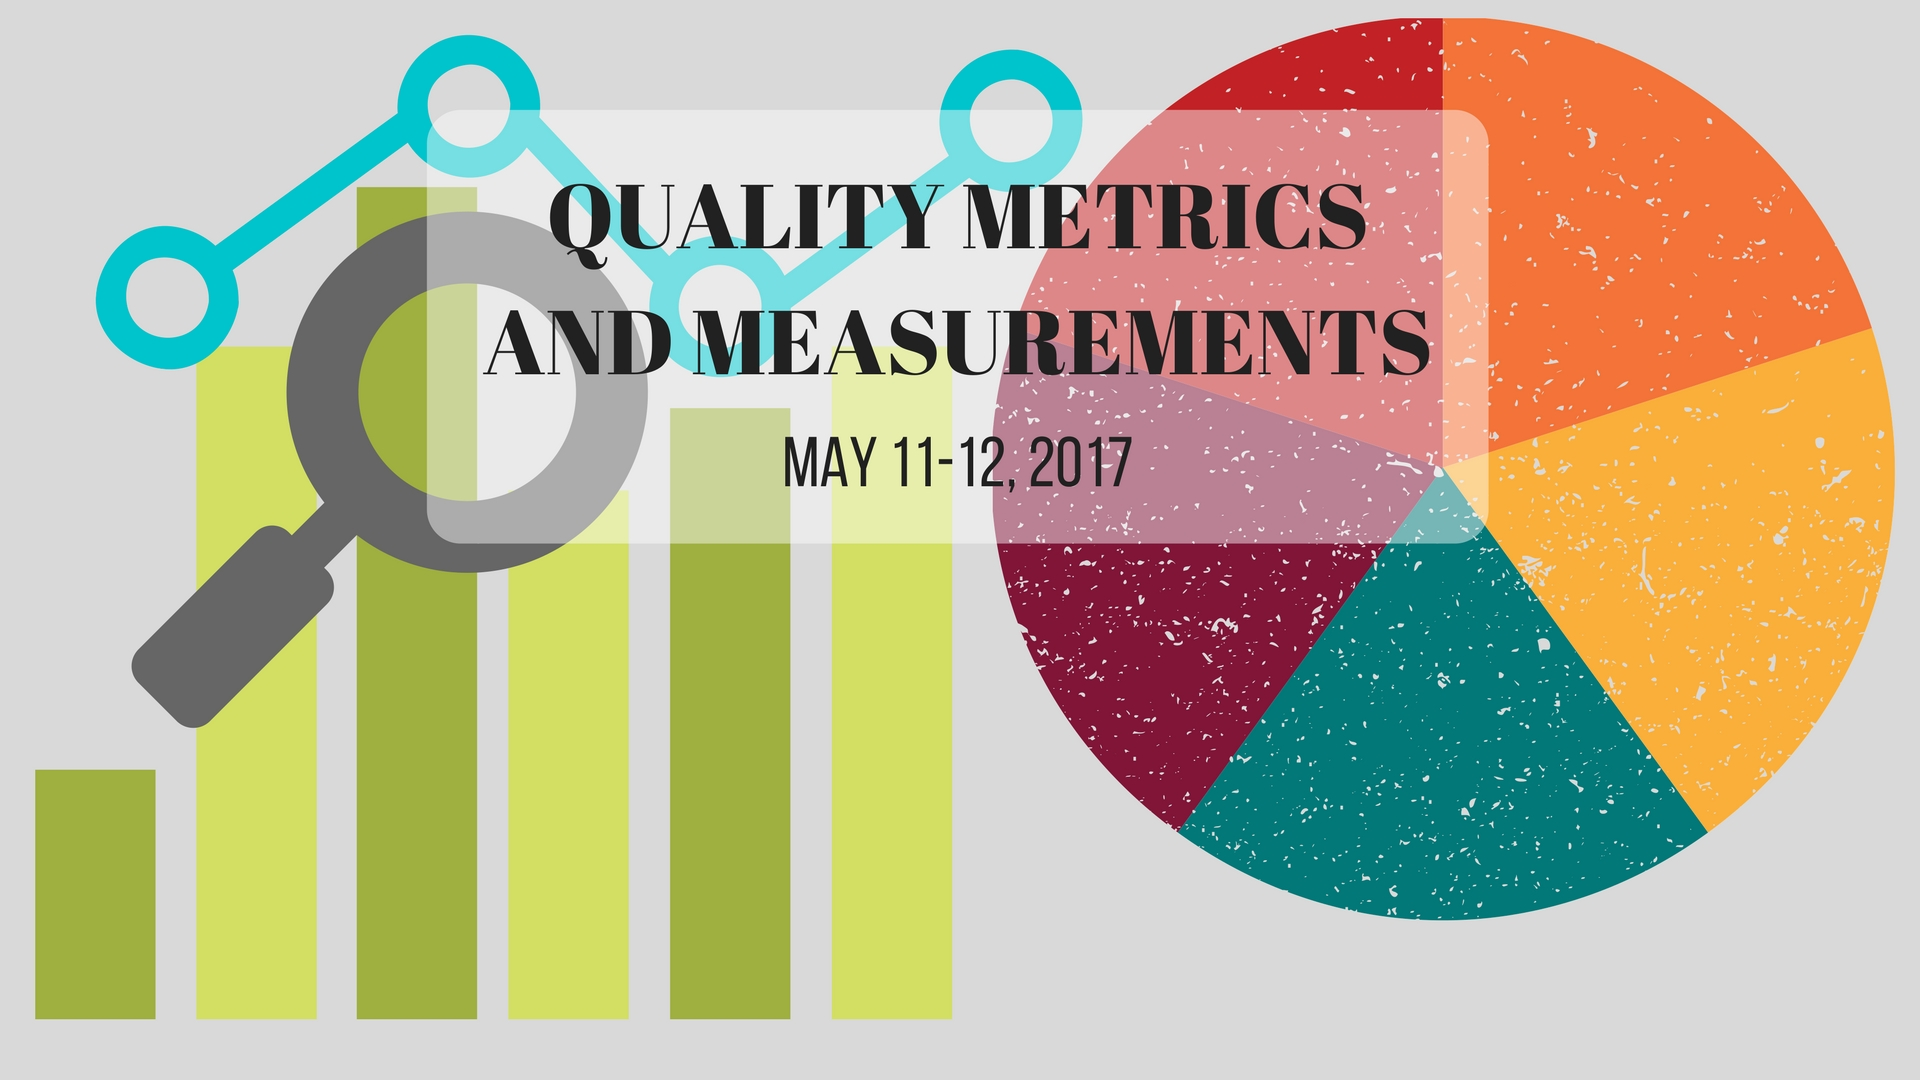 quality metrics for the product and Having metrics and a baseline to measure against gives you the confidence to factually say you have a quality product, based on your company's definition and having clear definitions and targets makes everything easier for you, because now you know how to measure success.